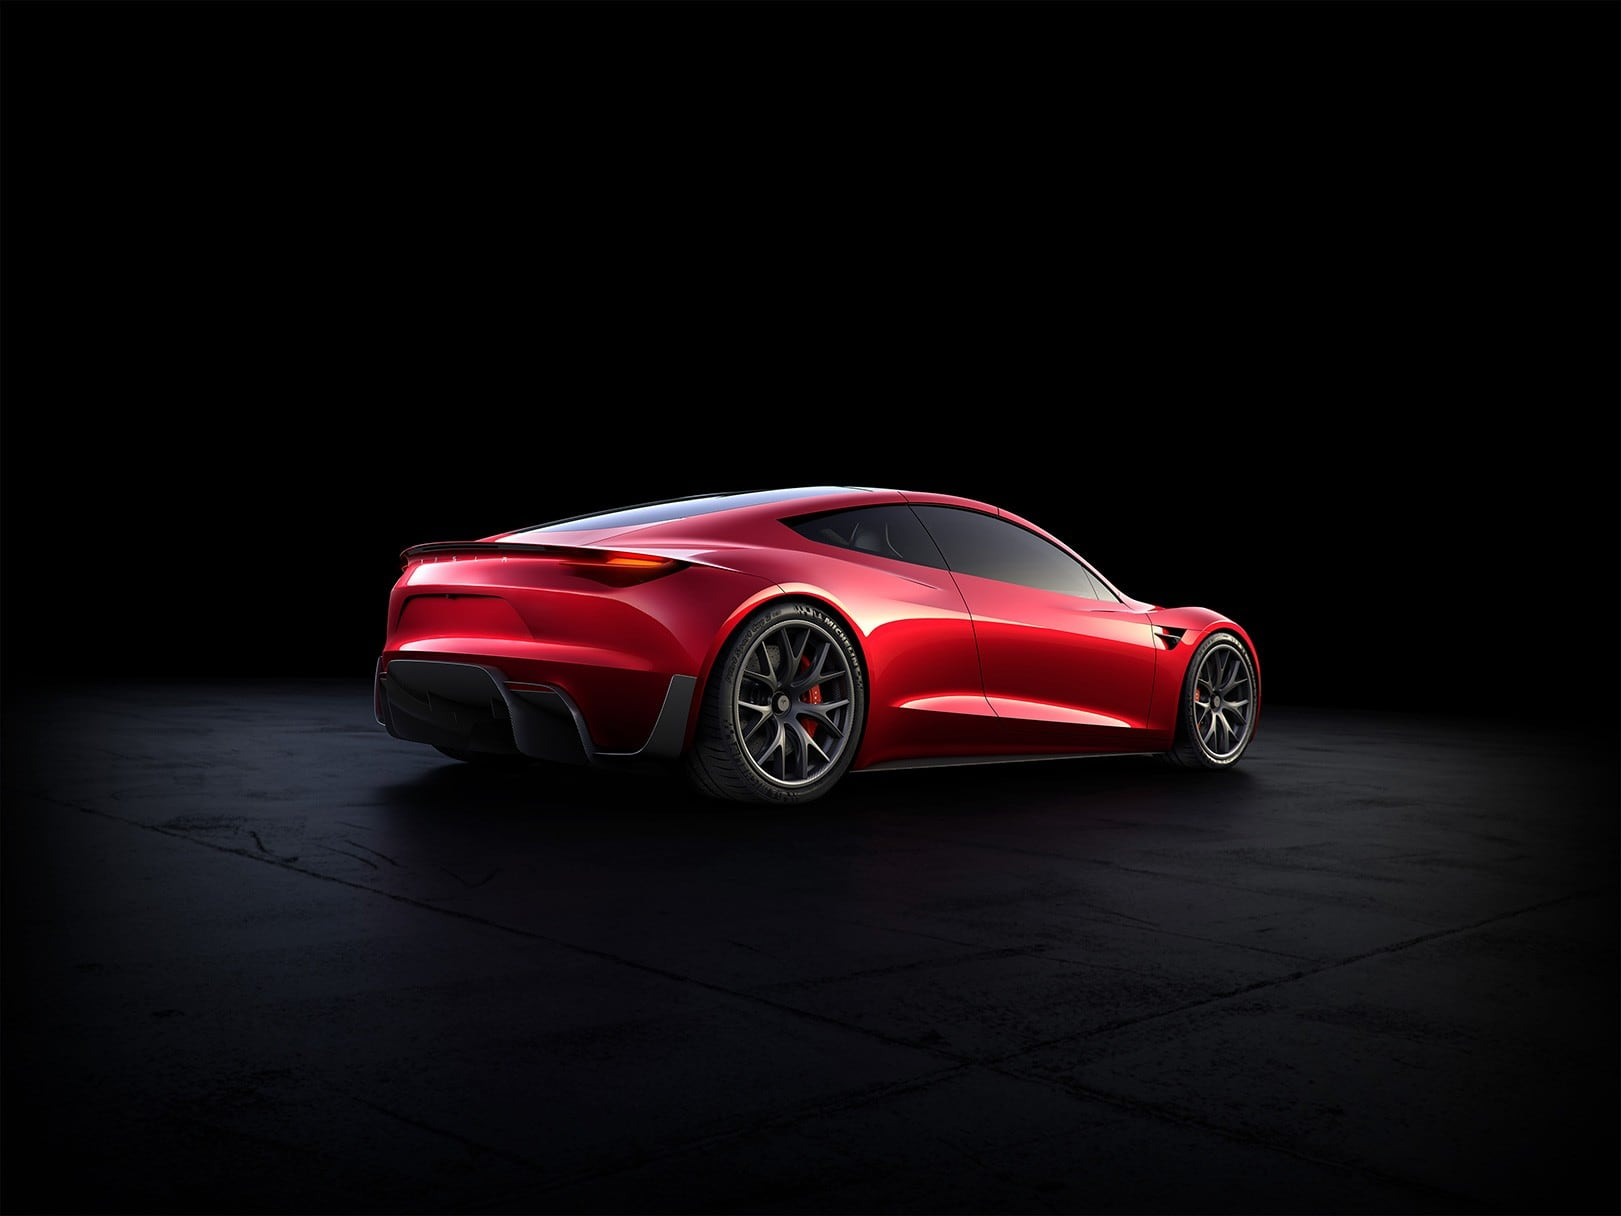 Rear view of the Tesla Roadster 2020